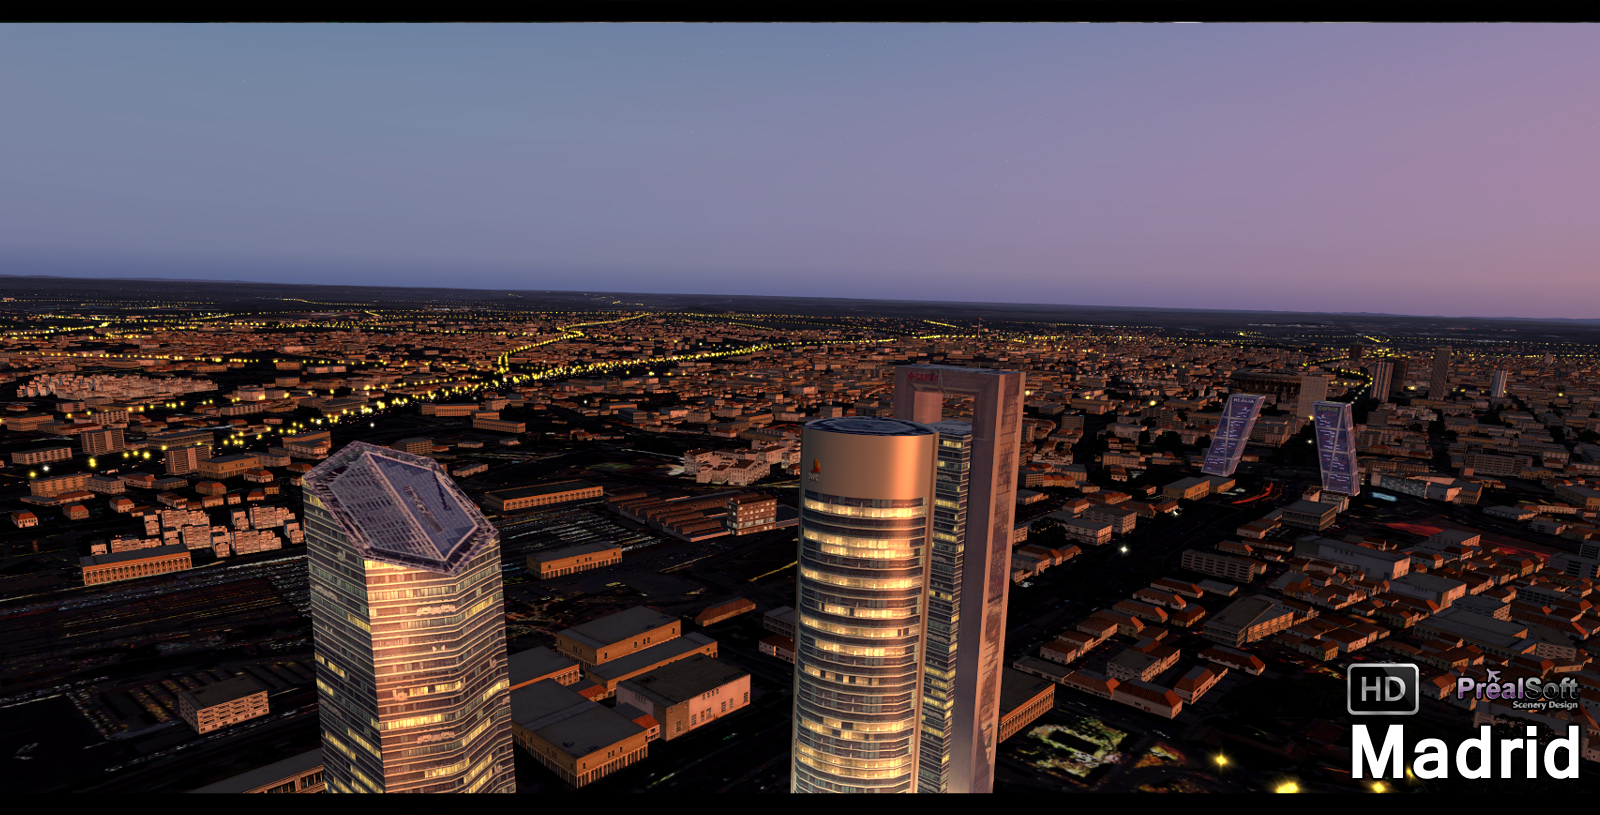 PREALSOFT - HD CITIES - MADRID - AUTOGEN 3D OBJ P3D V4